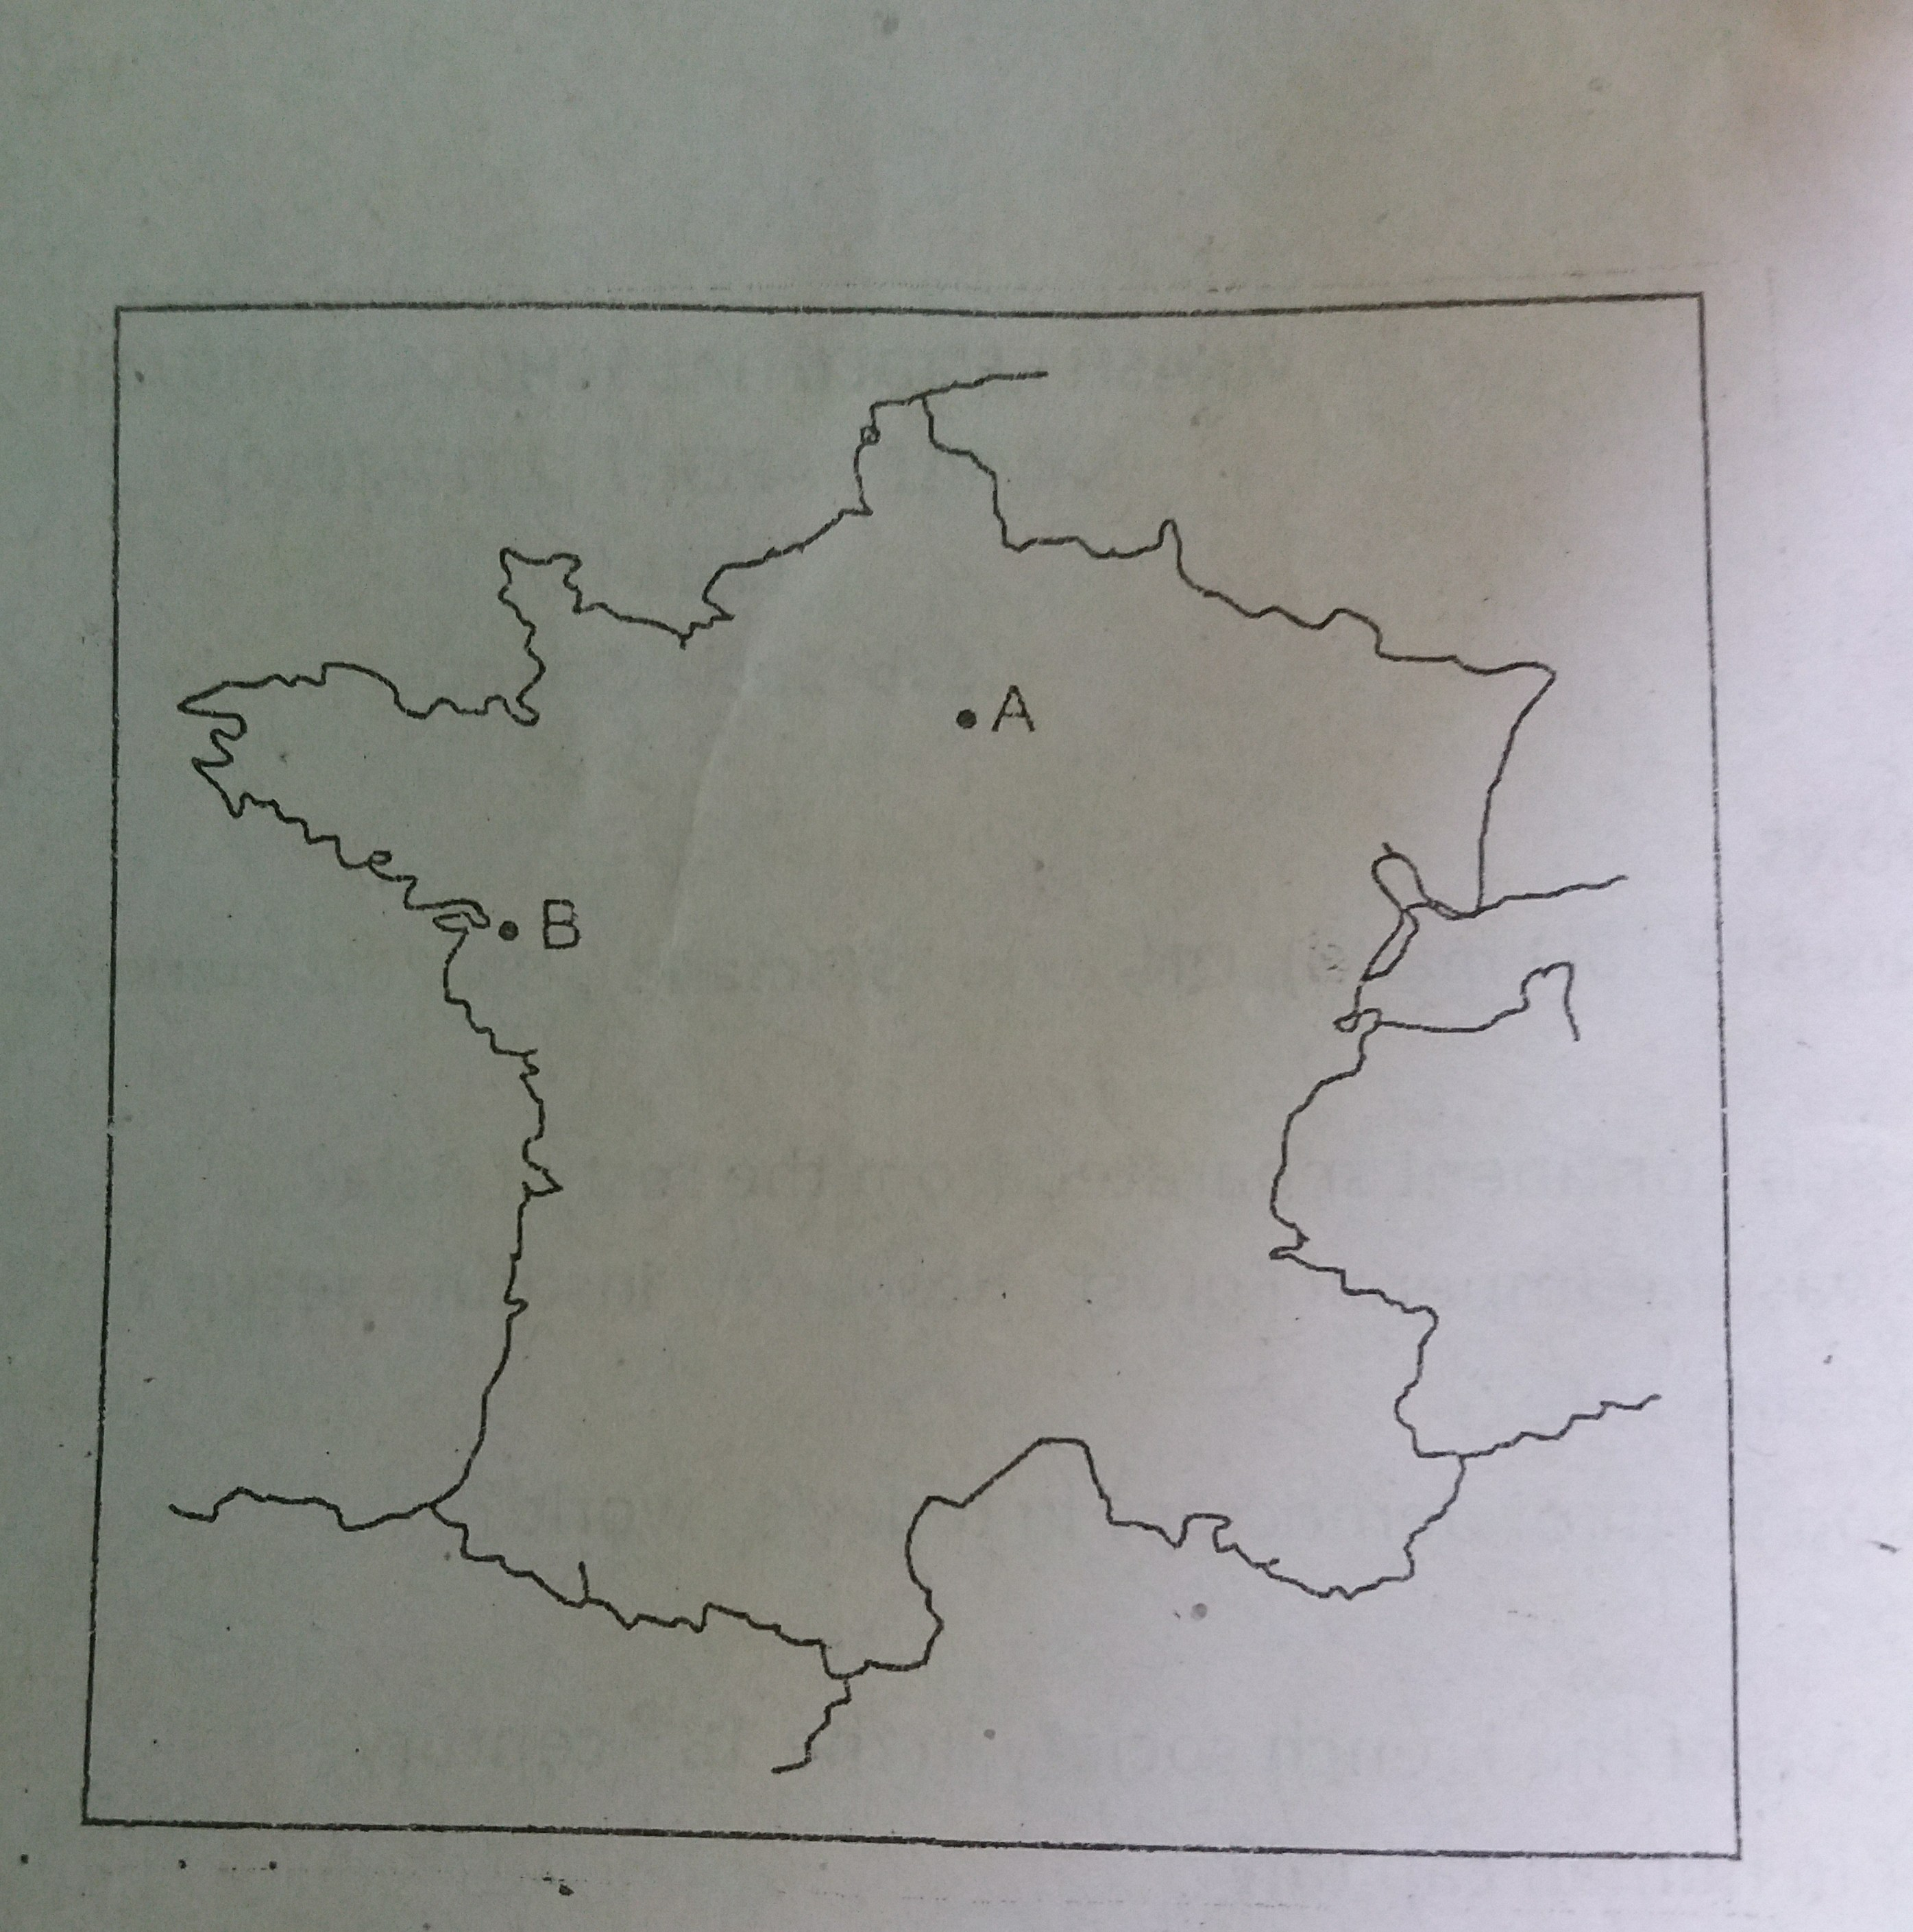 Map Of France With City Names.Two Items A And B Are Shown In The Given Outline Map Of France